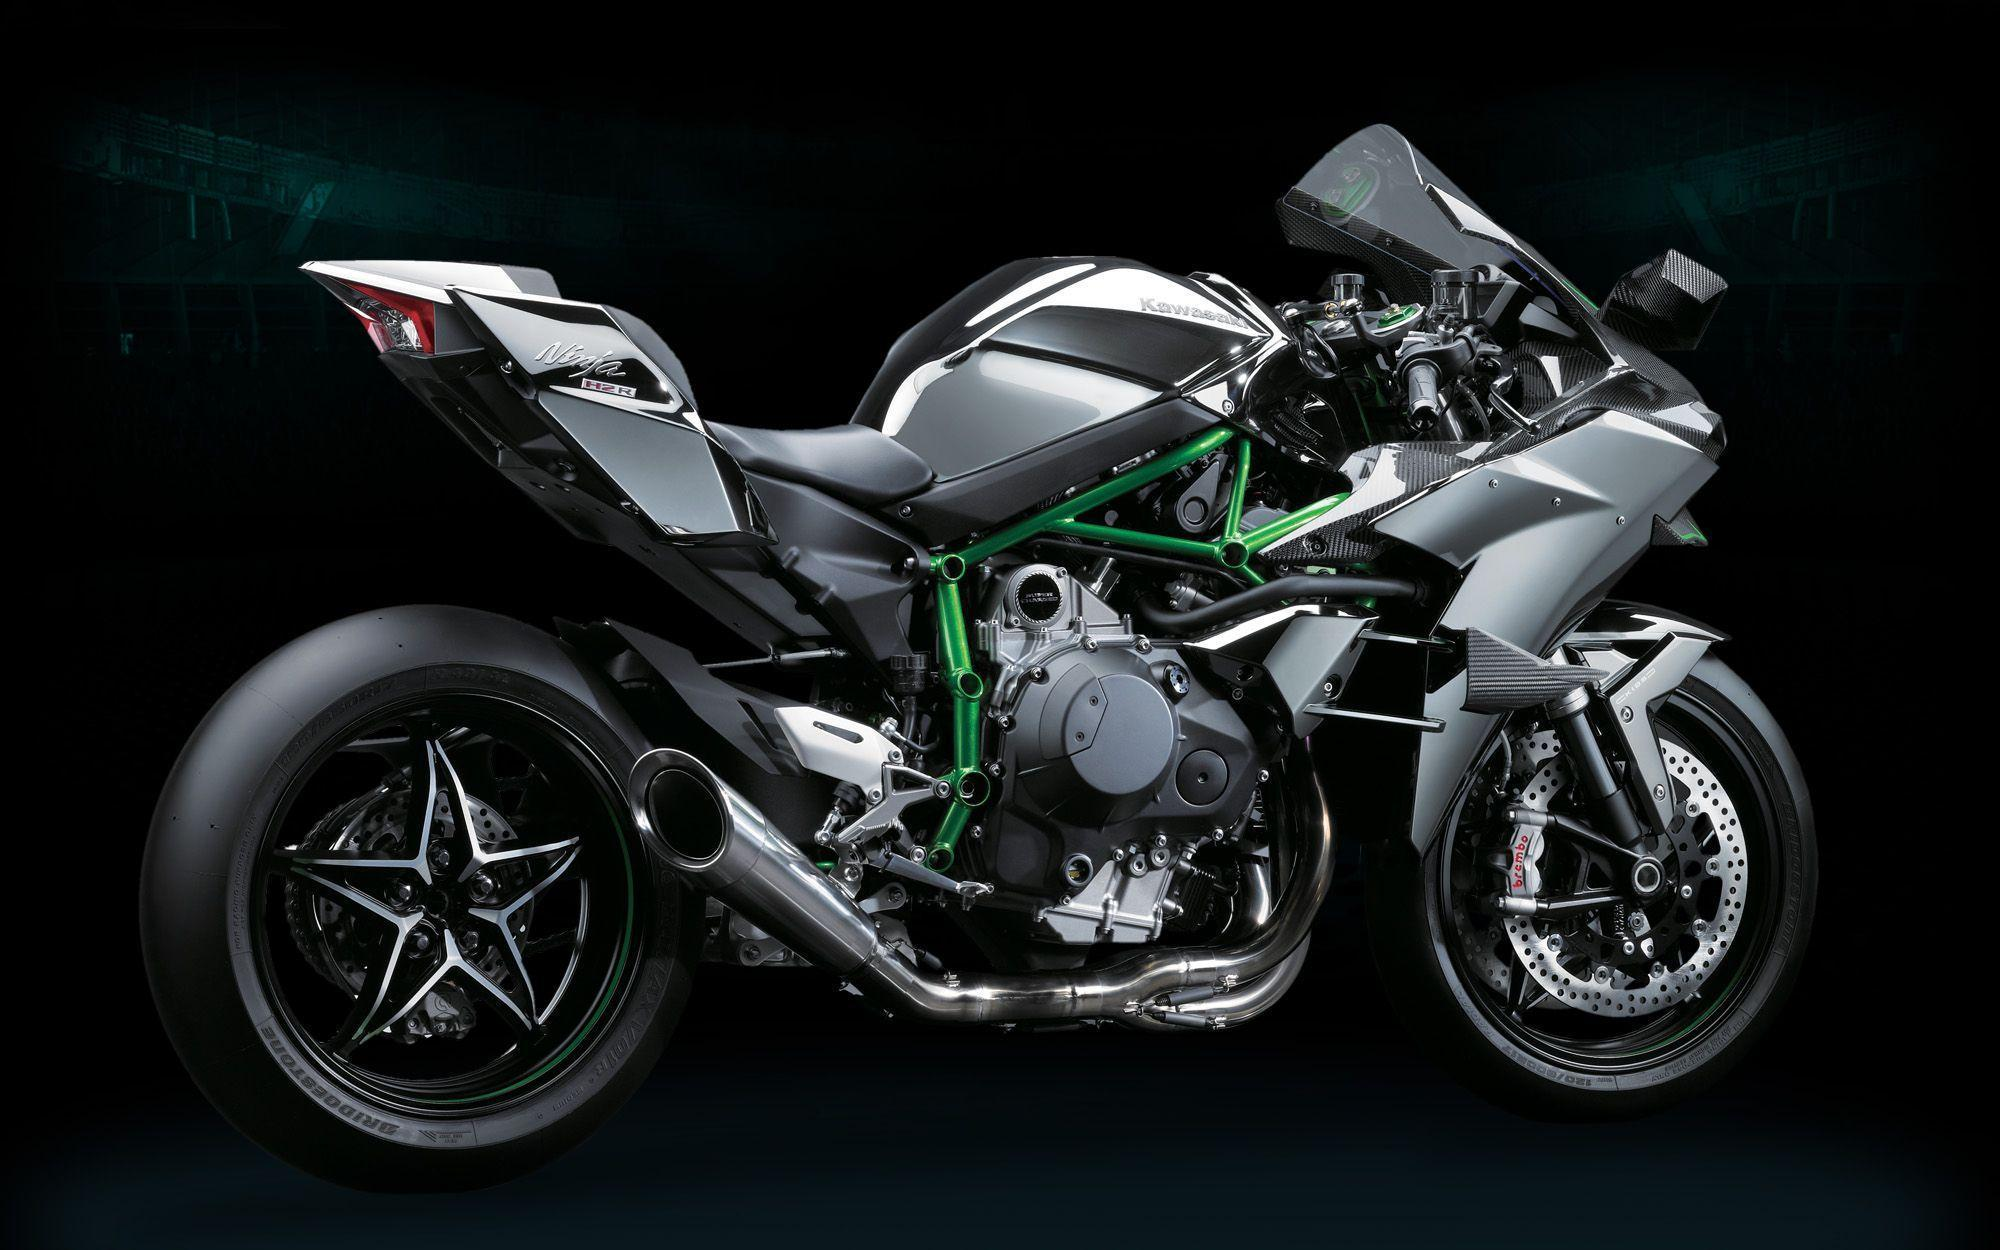 Kawasaki H2r Wallpapers Picture